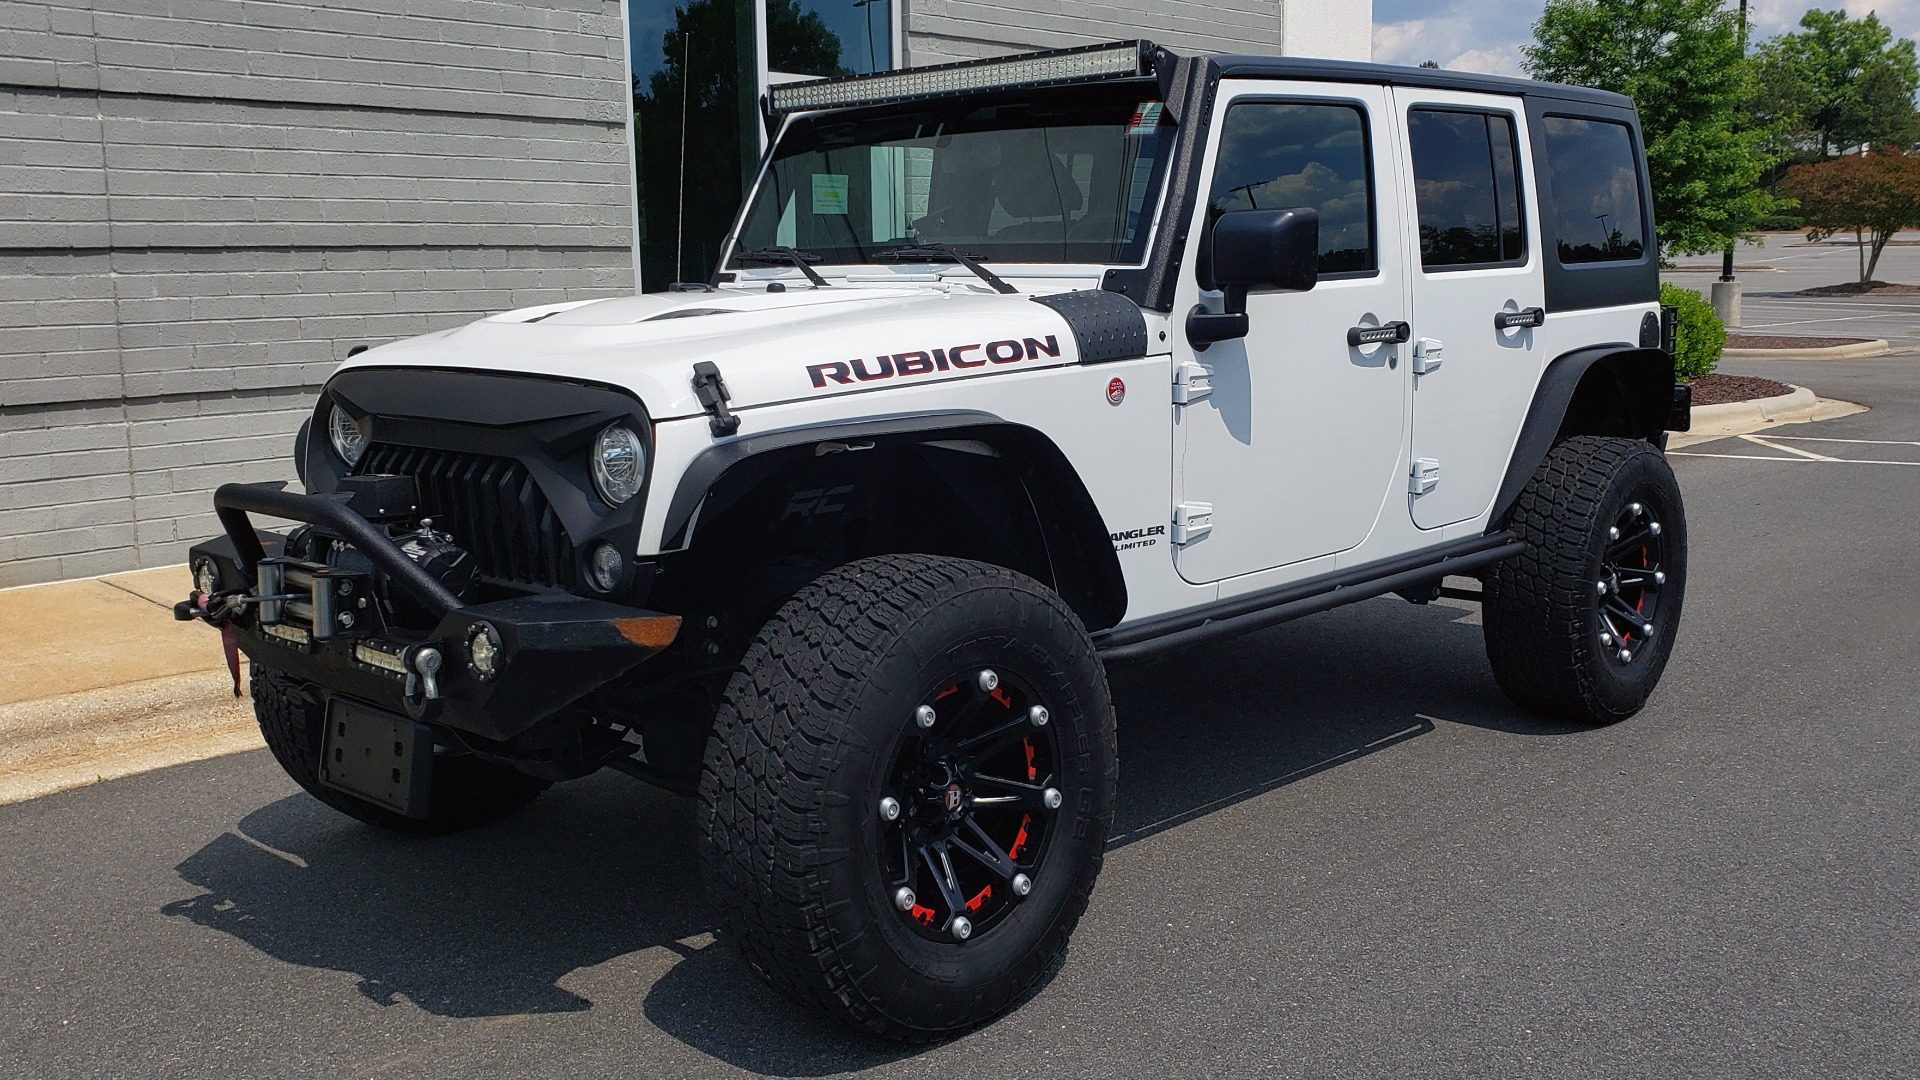 Used 2017 Jeep WRANGLER UNLIMITED RUBICON HARD ROCK 4X4 / 3.6L V6 / 5-SPD AUTO / NAV / REMOTE START for sale Sold at Formula Imports in Charlotte NC 28227 3